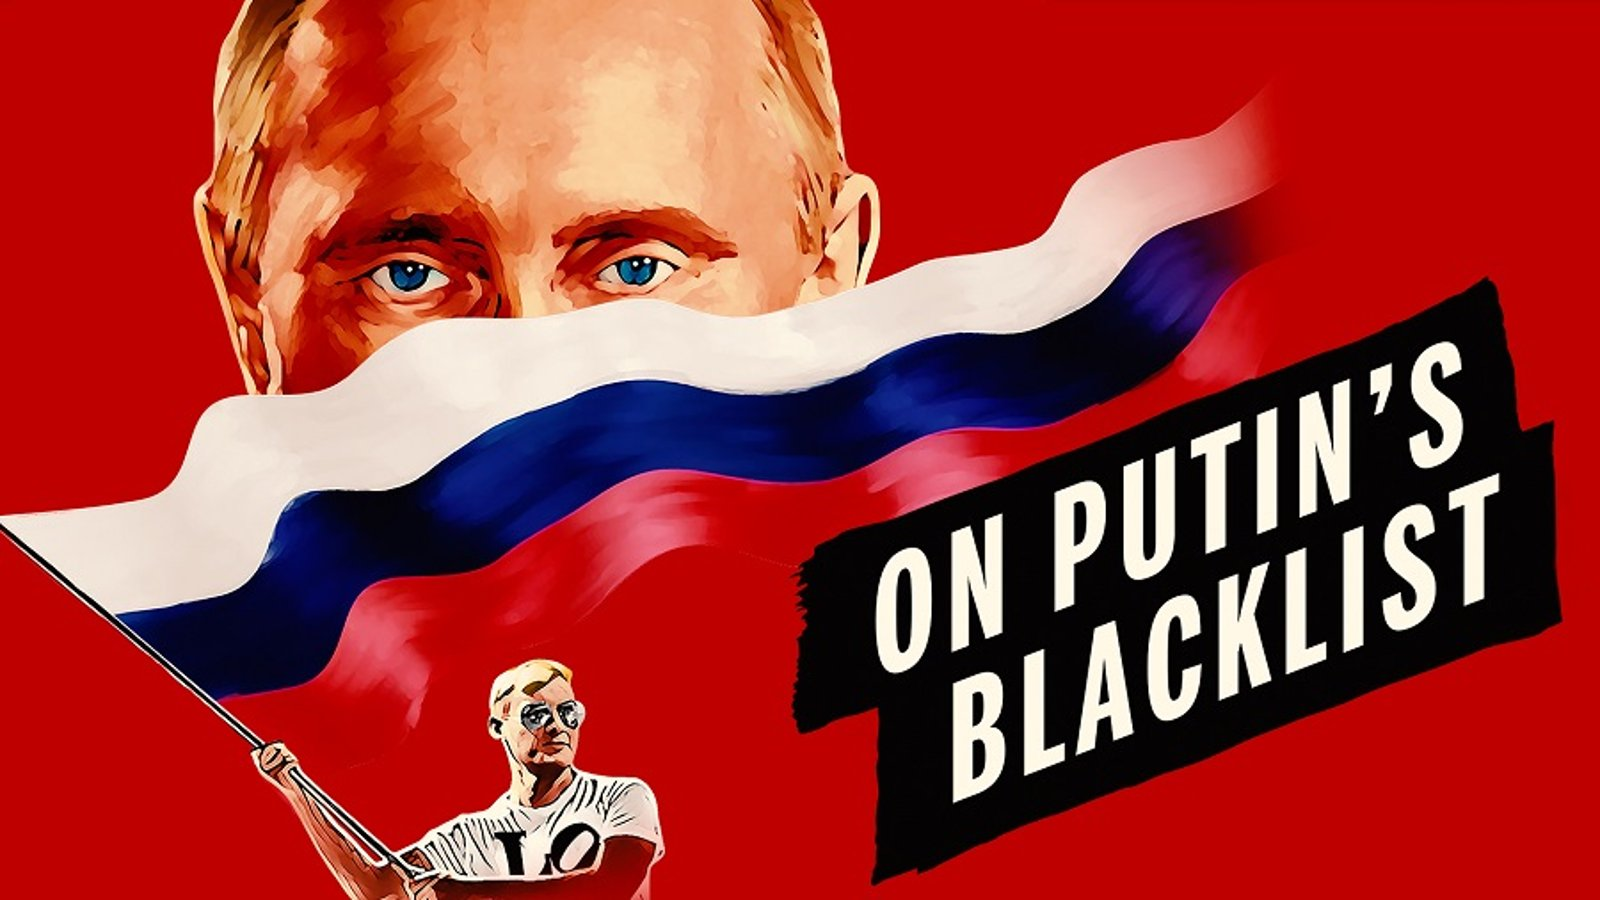 On Putin's Blacklist - Human Rights at Risk in Putin's Russia